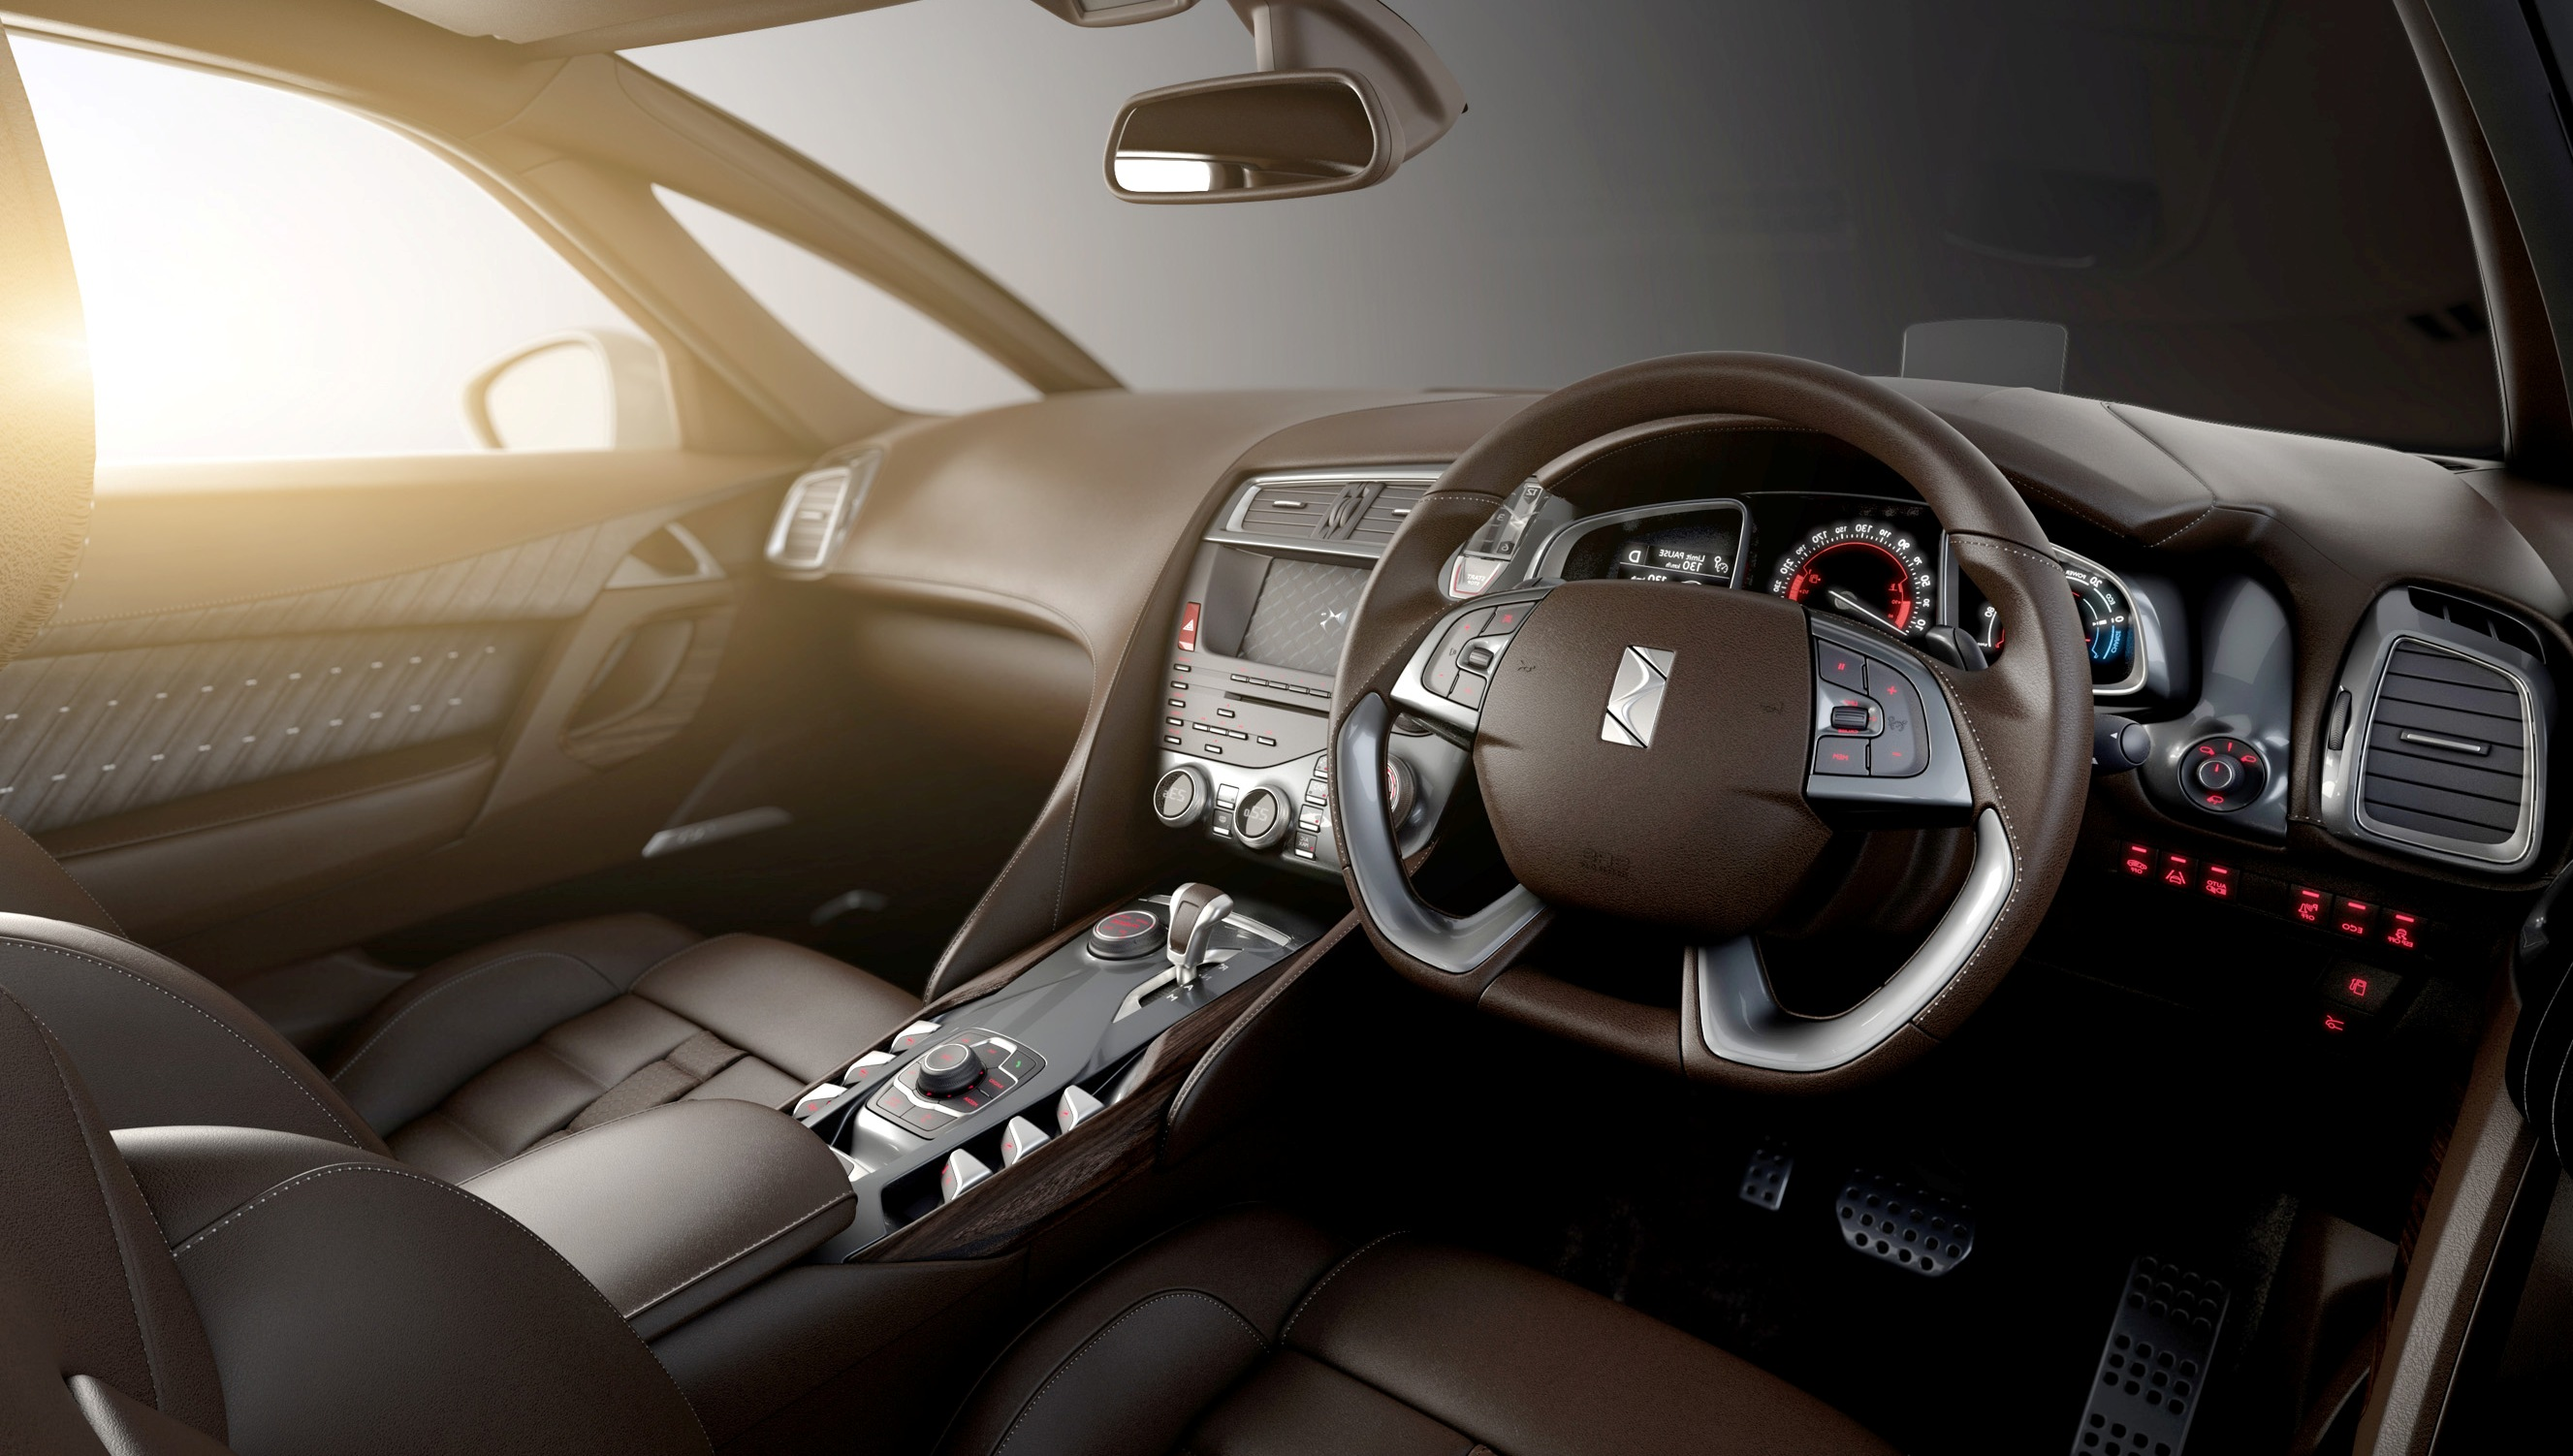 citroen ds5 images #7